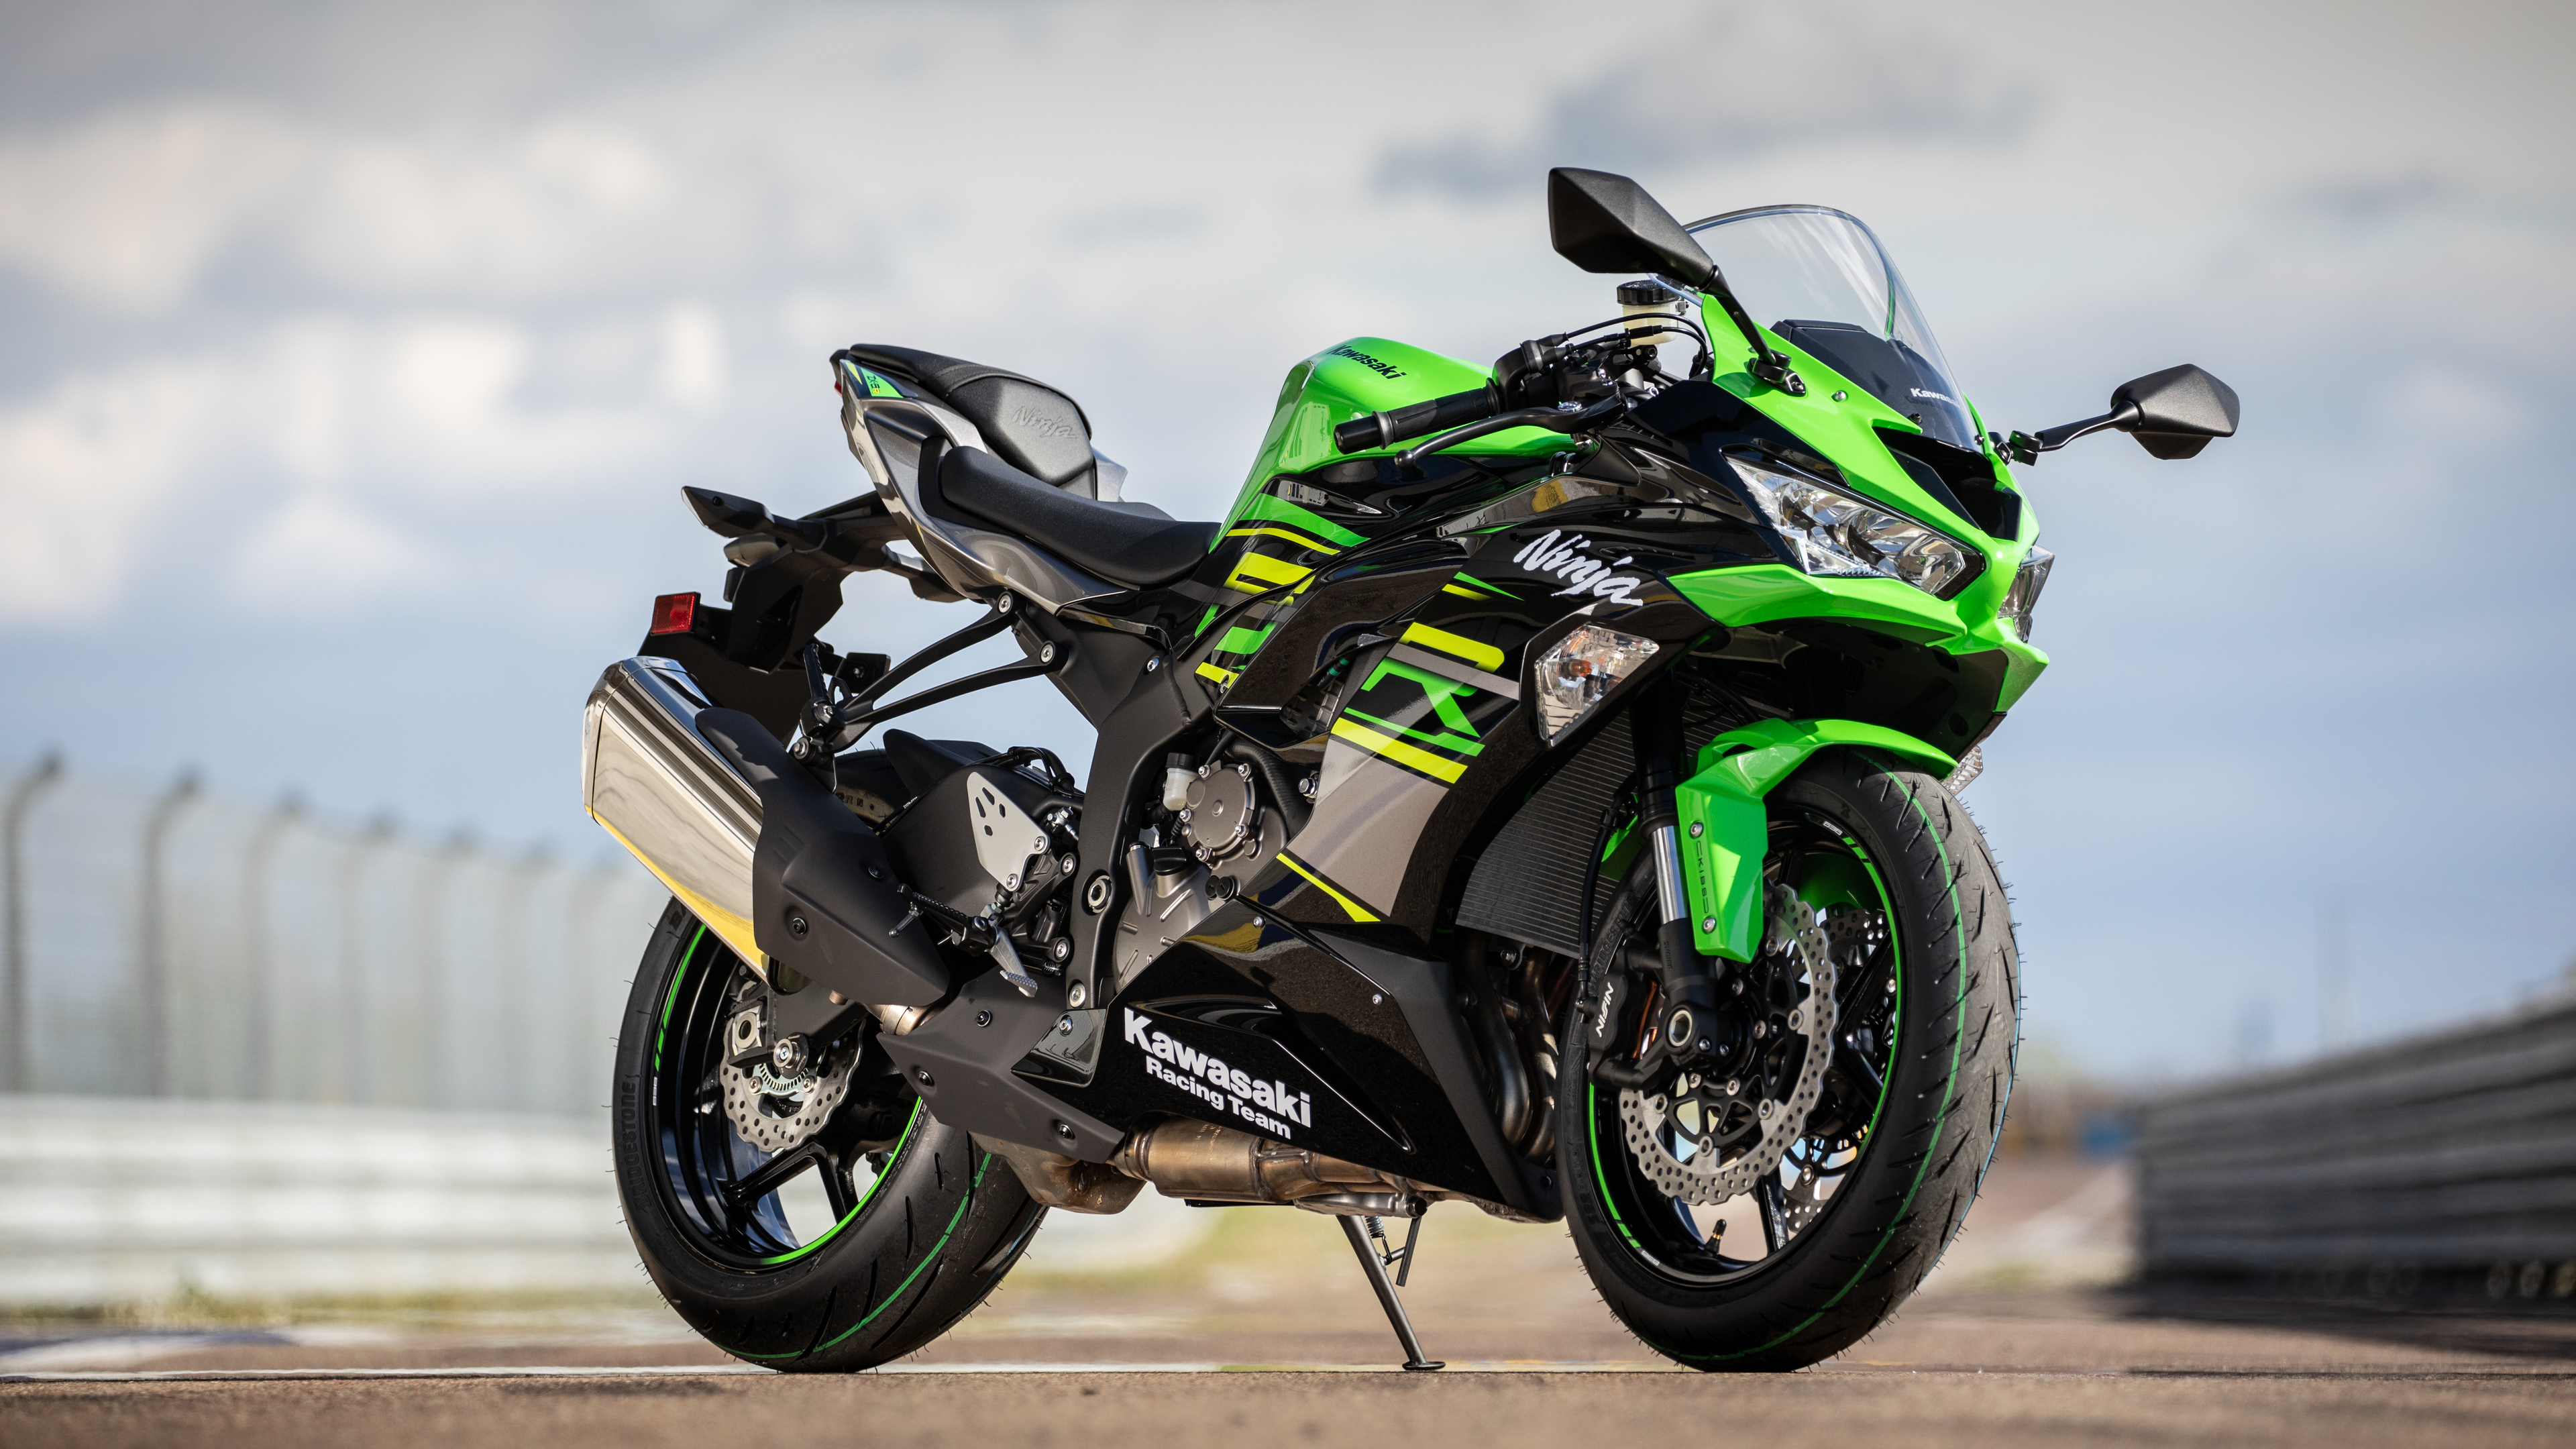 kawasaki ninja zx 6r 2019 1560535658 - Kawasaki Ninja ZX 6R 2019 - kawasaki zx10r wallpapers, kawasaki wallpapers, hd-wallpapers, bikes wallpapers, 4k-wallpapers